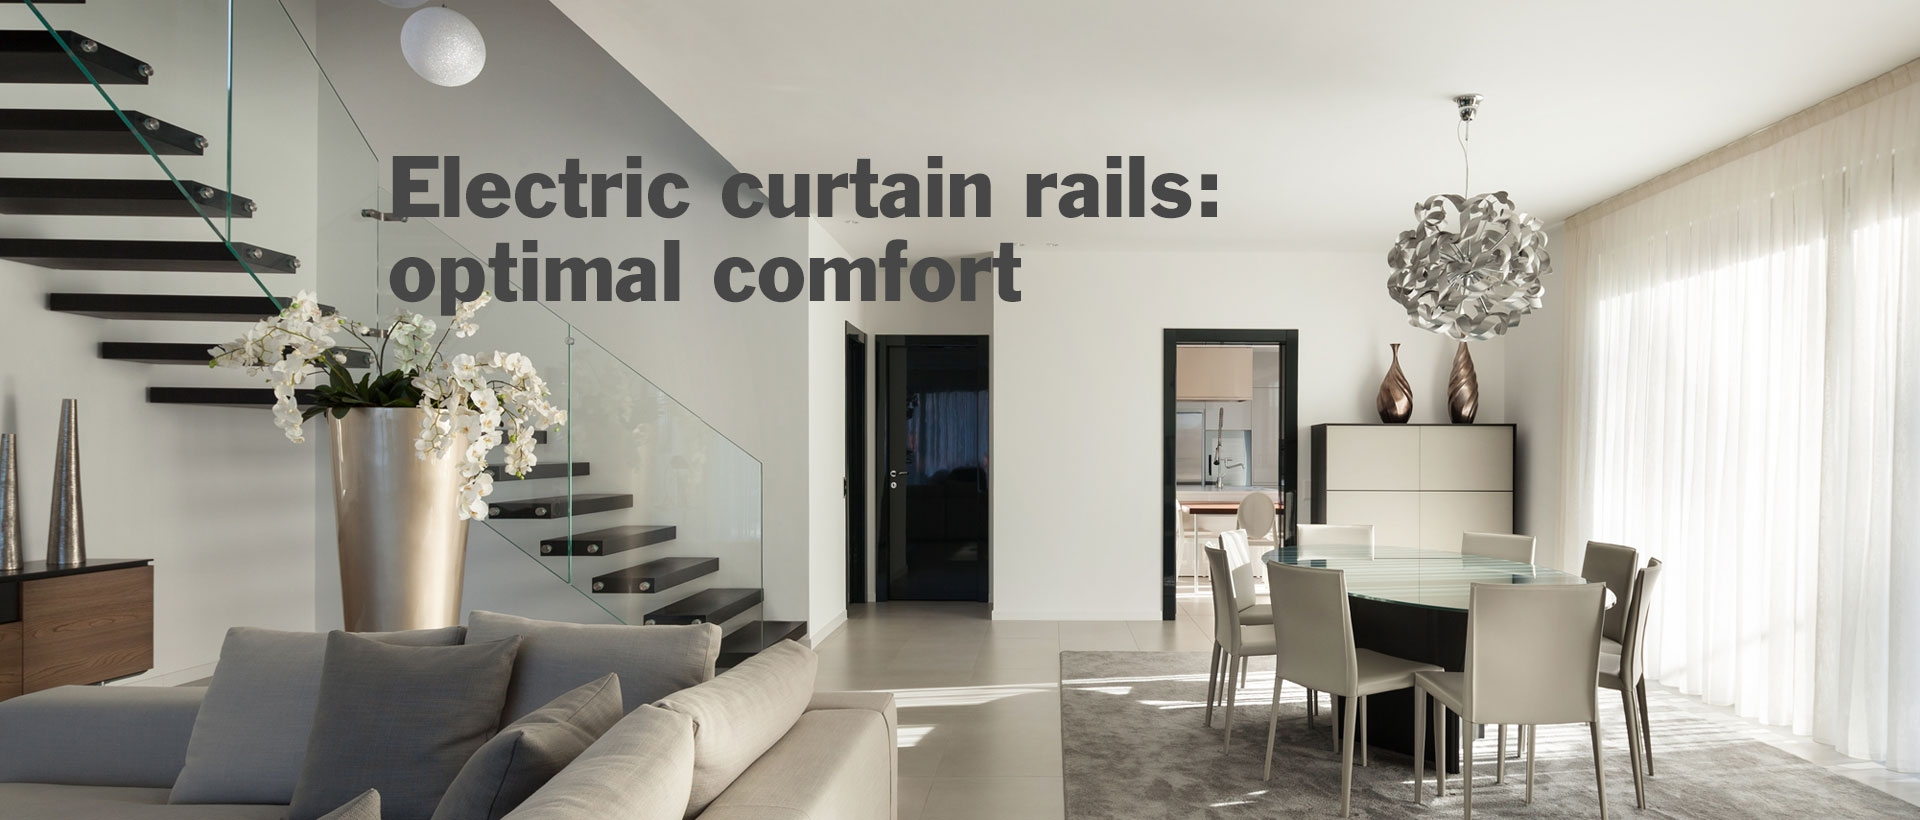 Electric curtain rails: ...